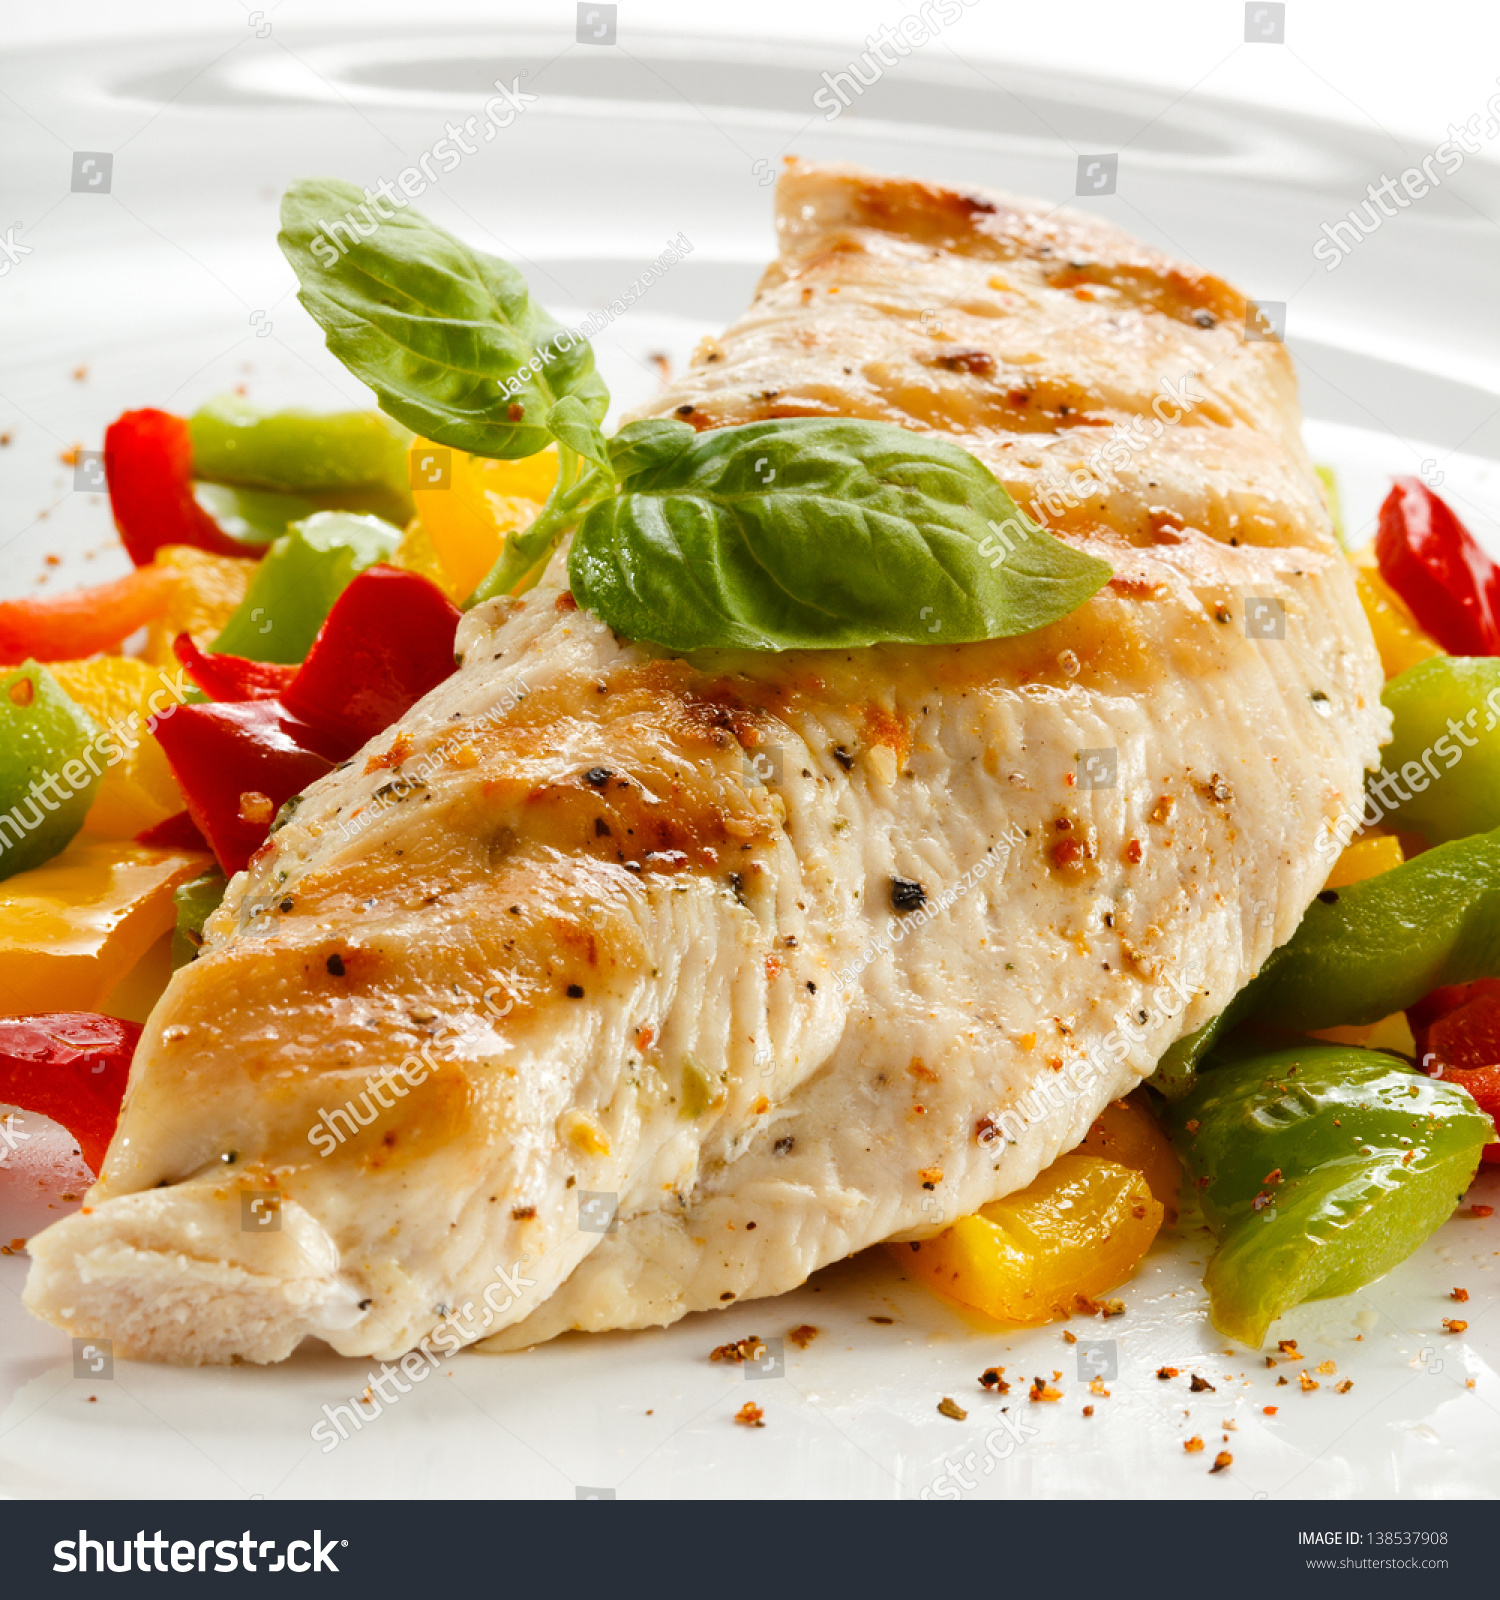 http://image.shutterstock.com/z/stock-photo-grilled-chicken-breasts-and-vegetables-138537908.jpg